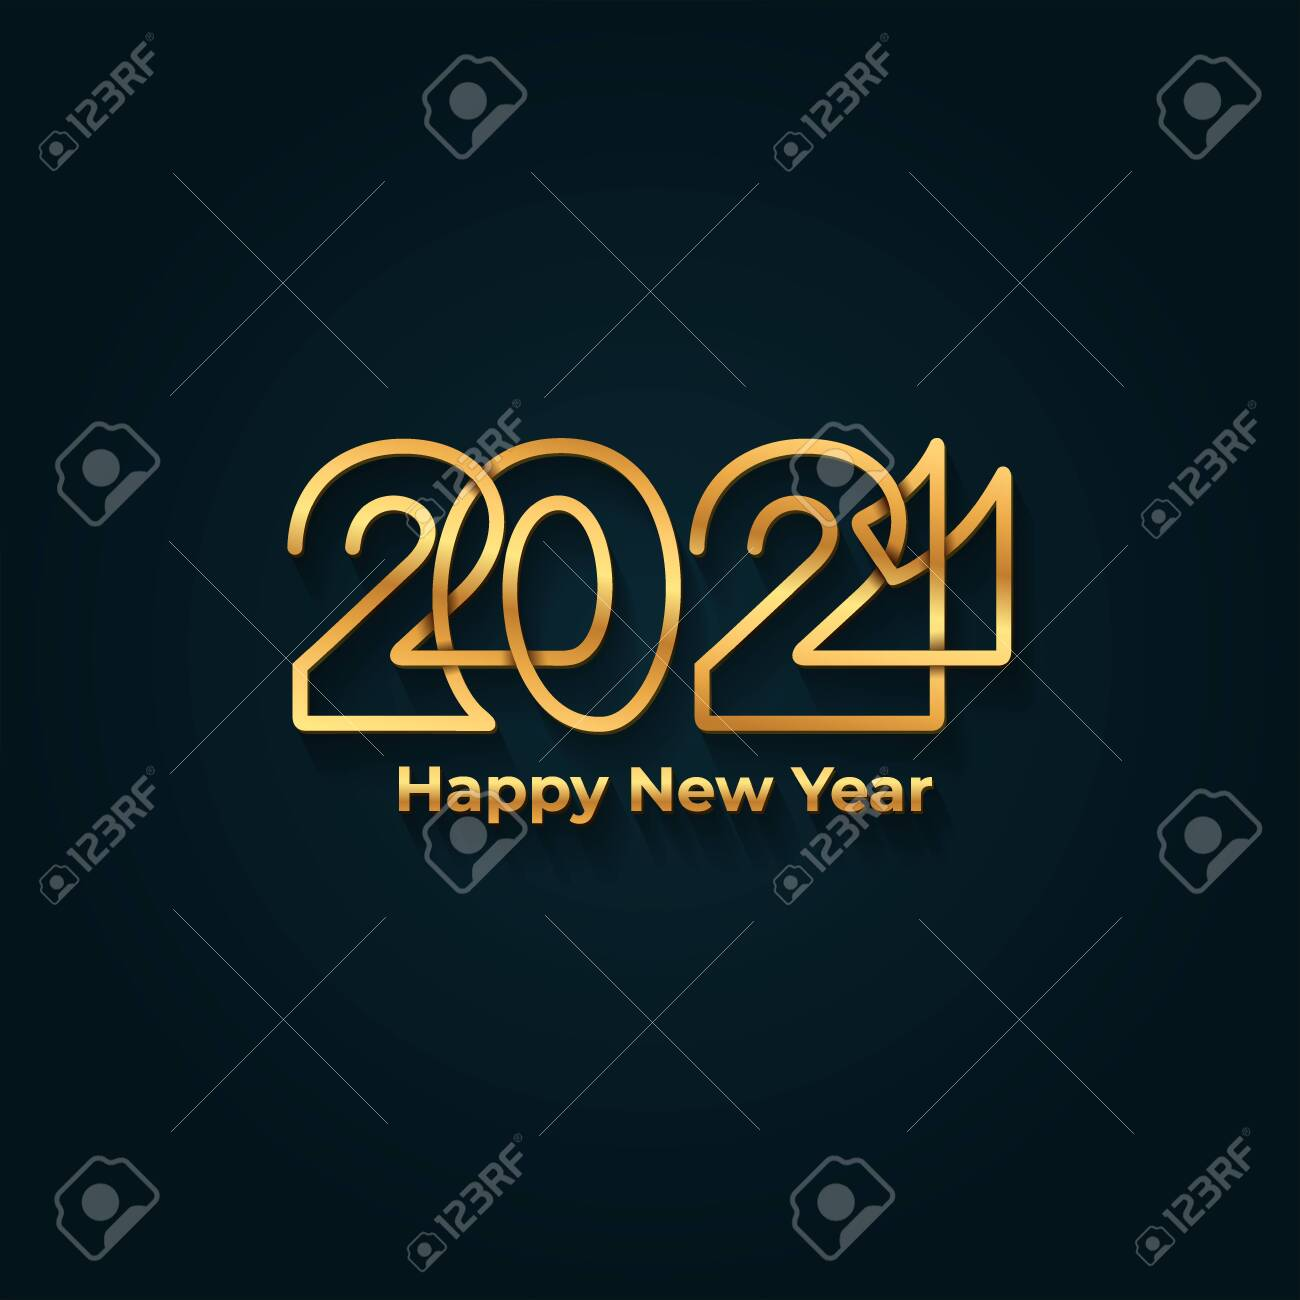 Happy New Year 2021 banner. Golden luxury text, gold glowing numbers. Vector illustration. Isolated on blue background. - 149610235